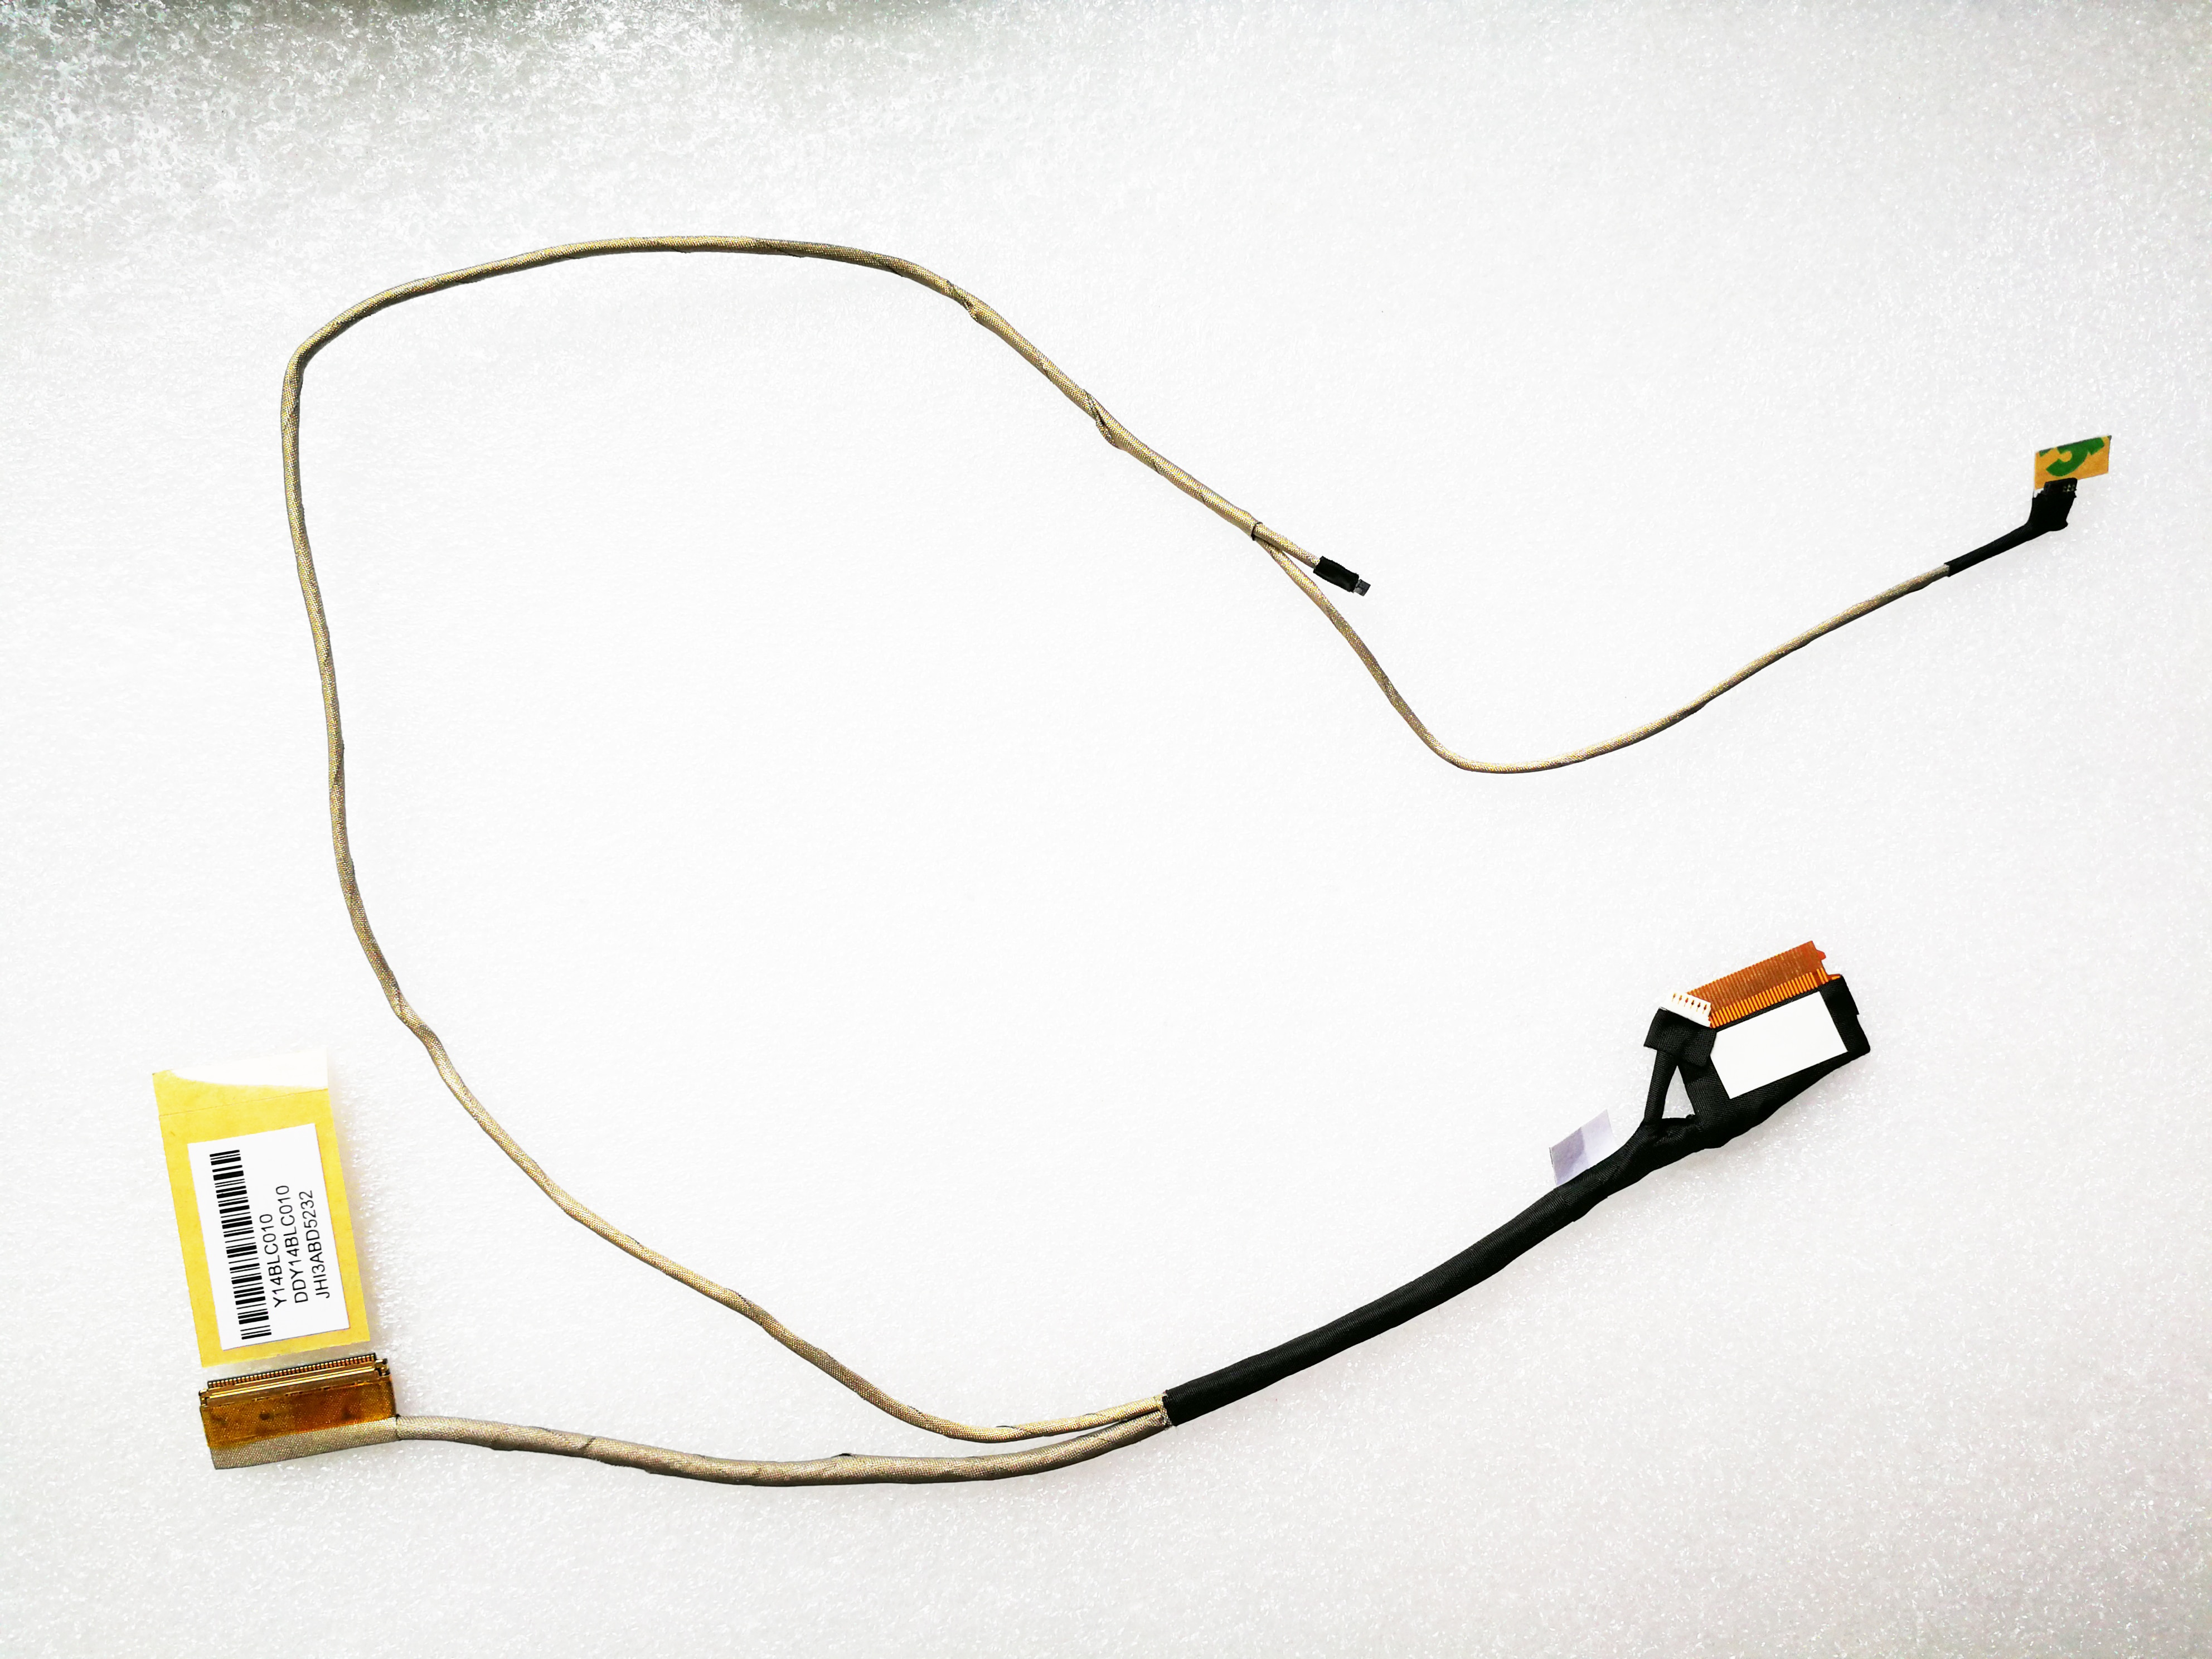 new original for hp 15-p 15-k 15-V 15-D led lcd lvds cable  DDY14BLC010